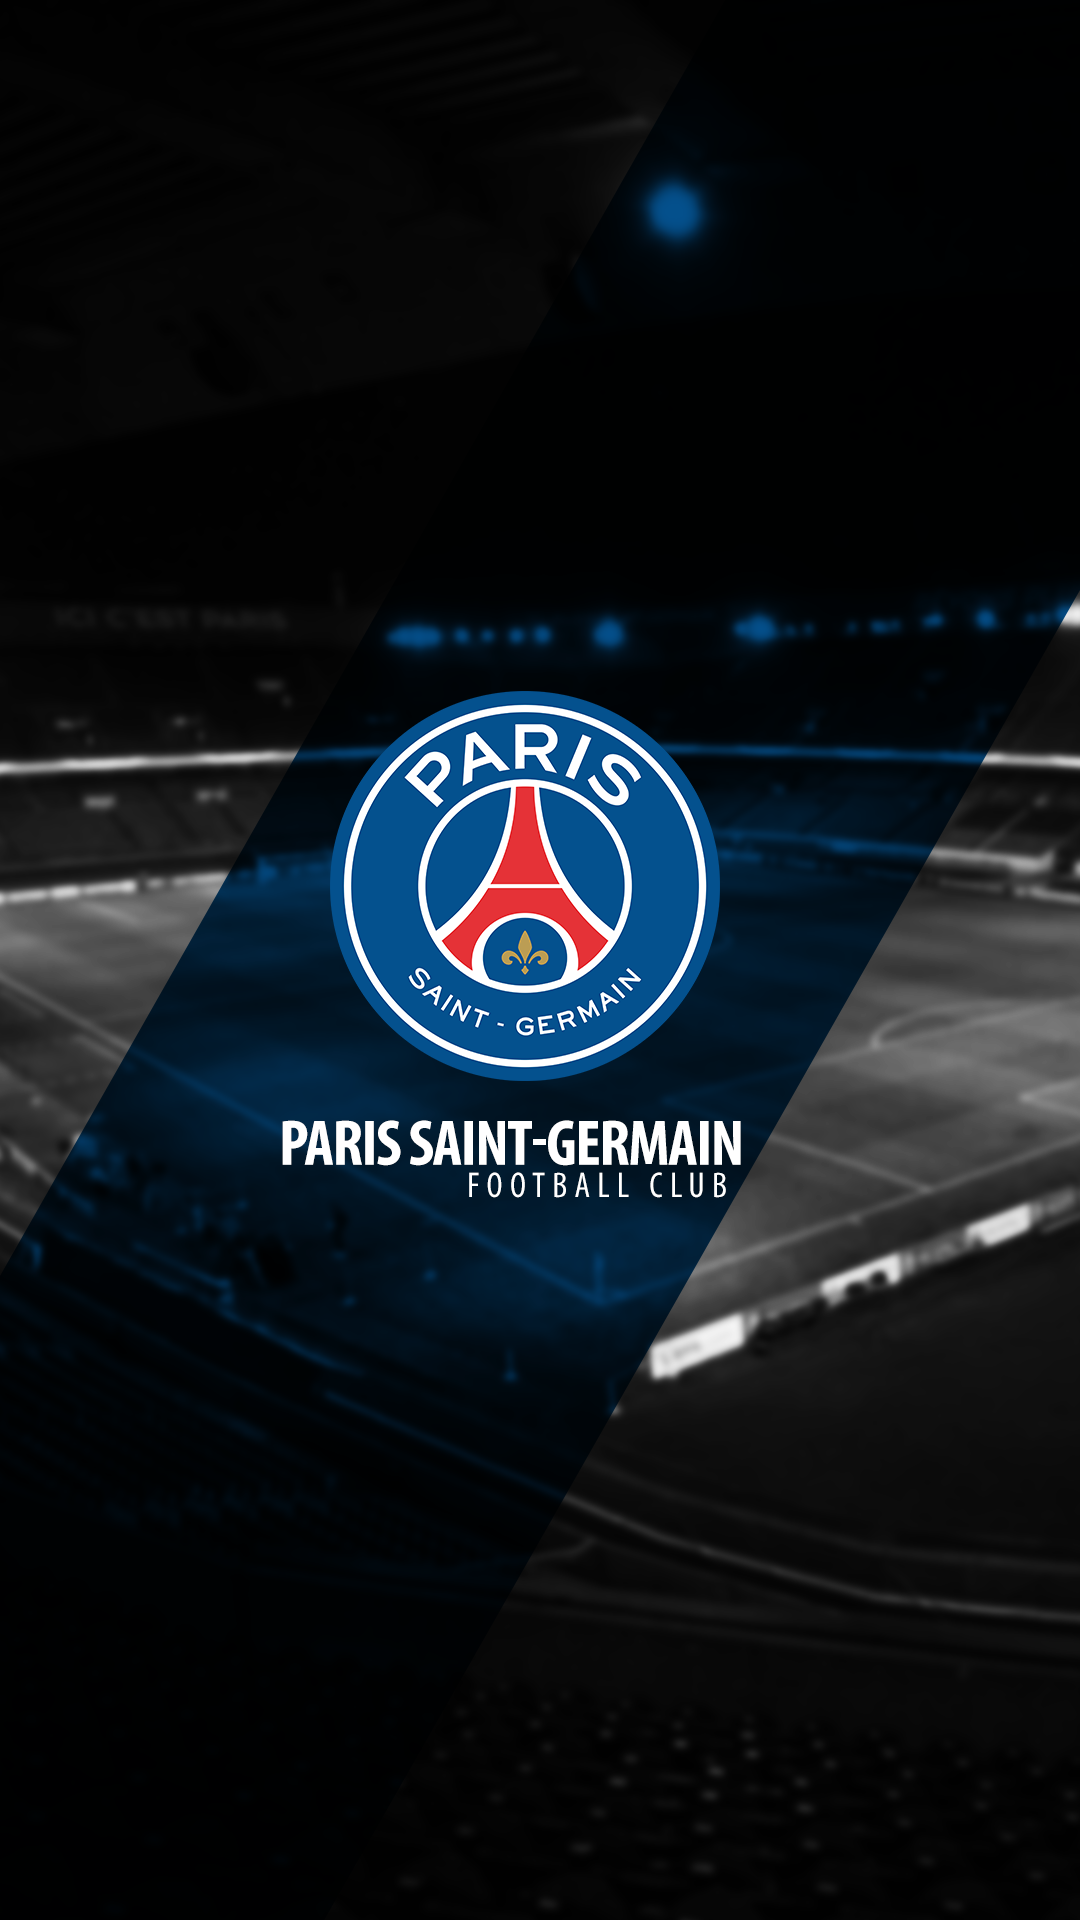 Paris Saint Germain Wallpaper Iphone Paris Saint Saint Germain Psg